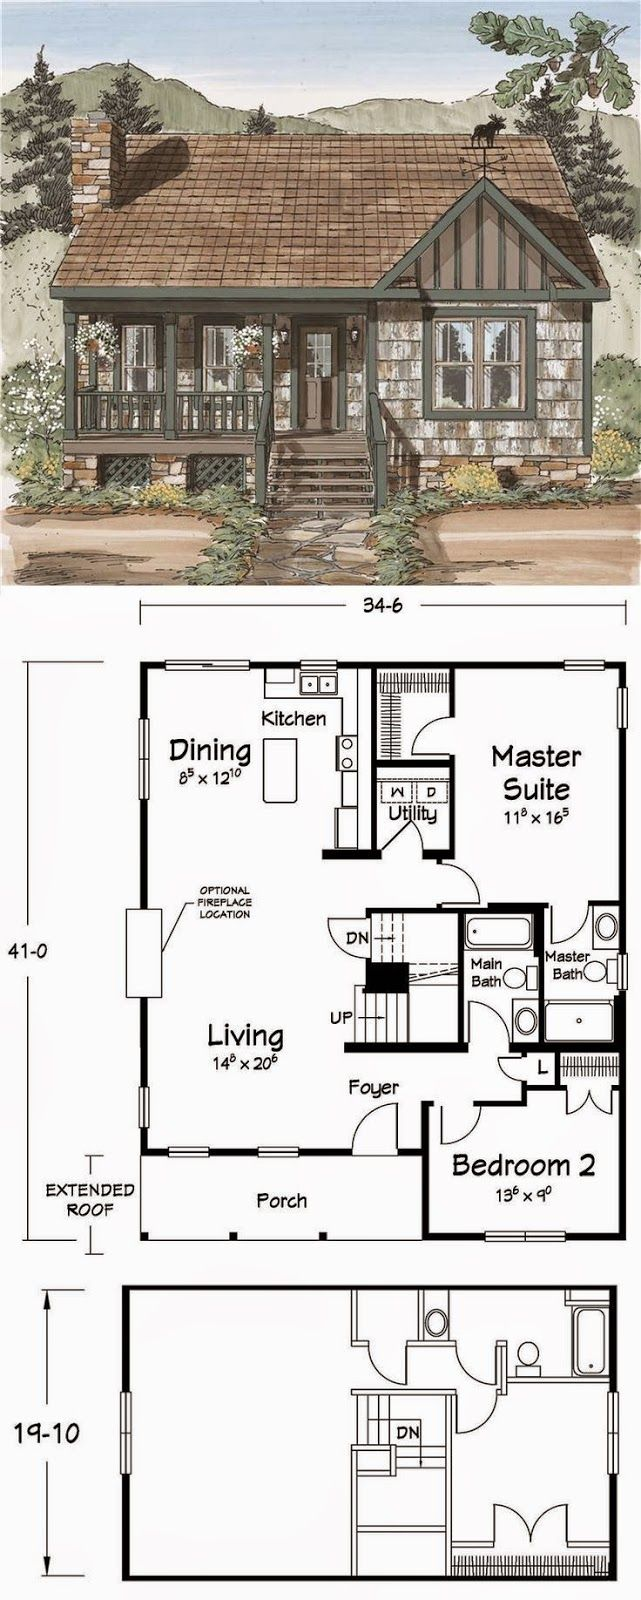 1000 Images About House On Pinterest House Plans Small